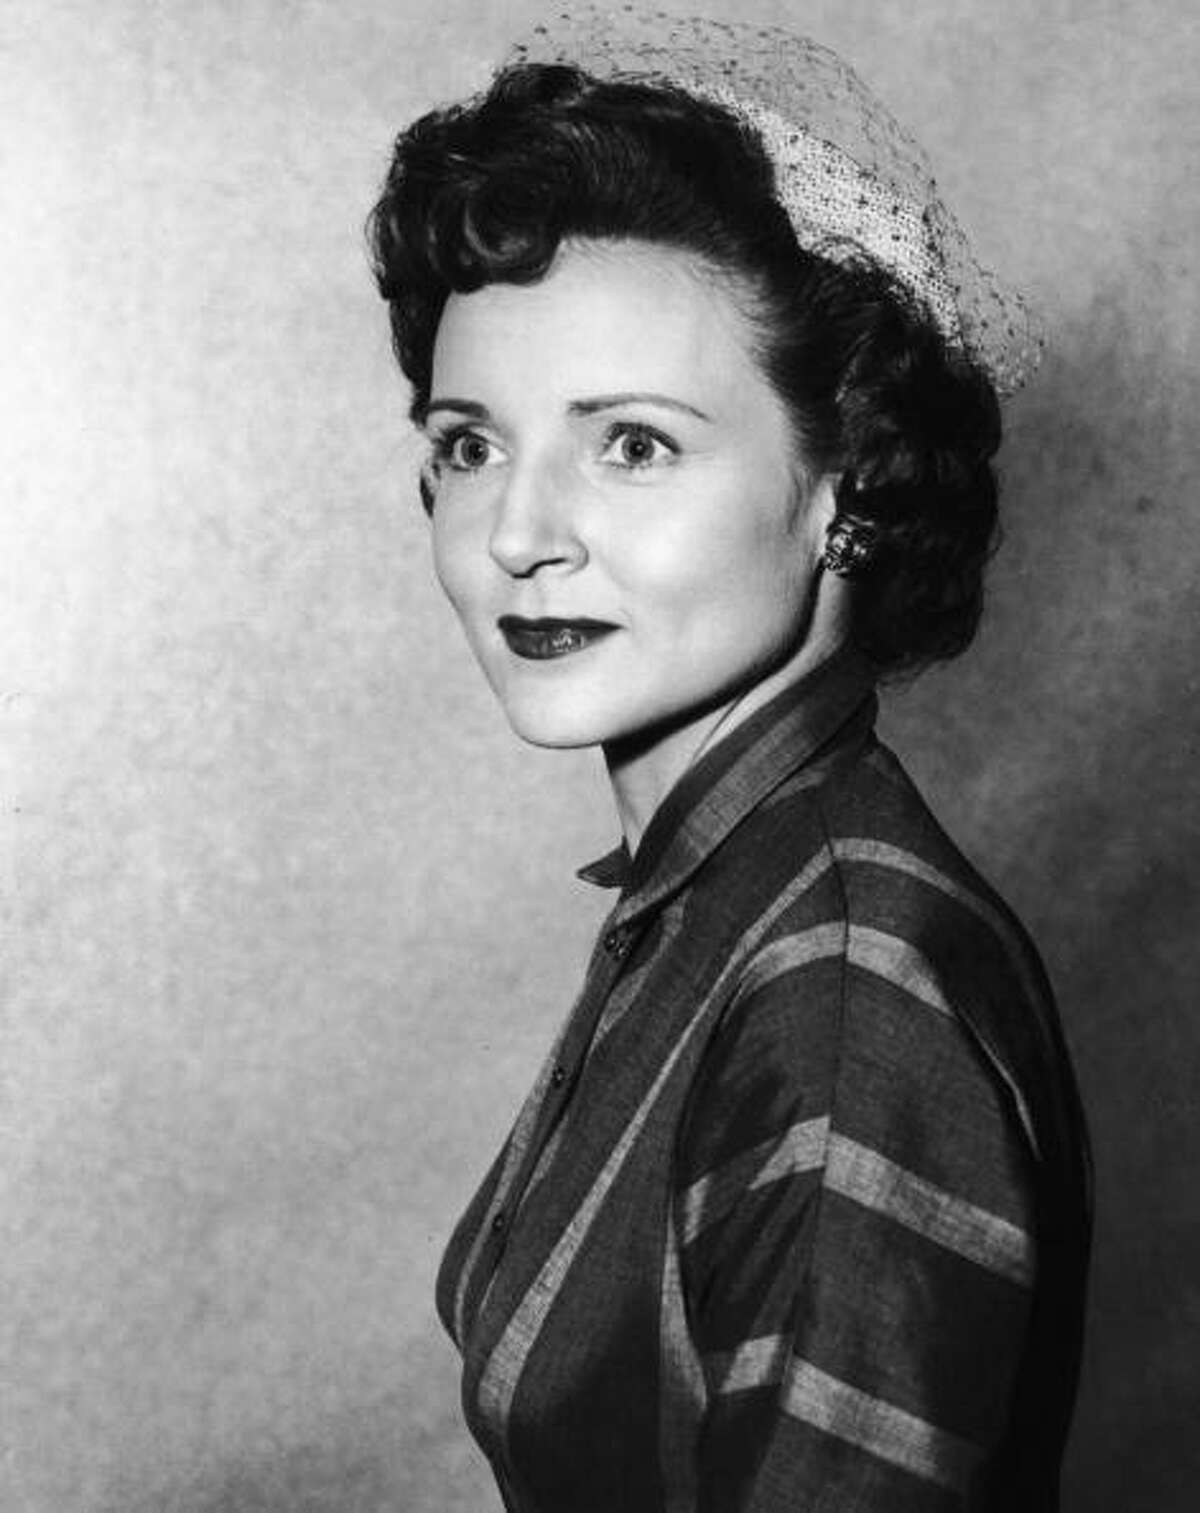 A headshot portrait of American actor Betty White wearing a veiled hat, circa 1955.